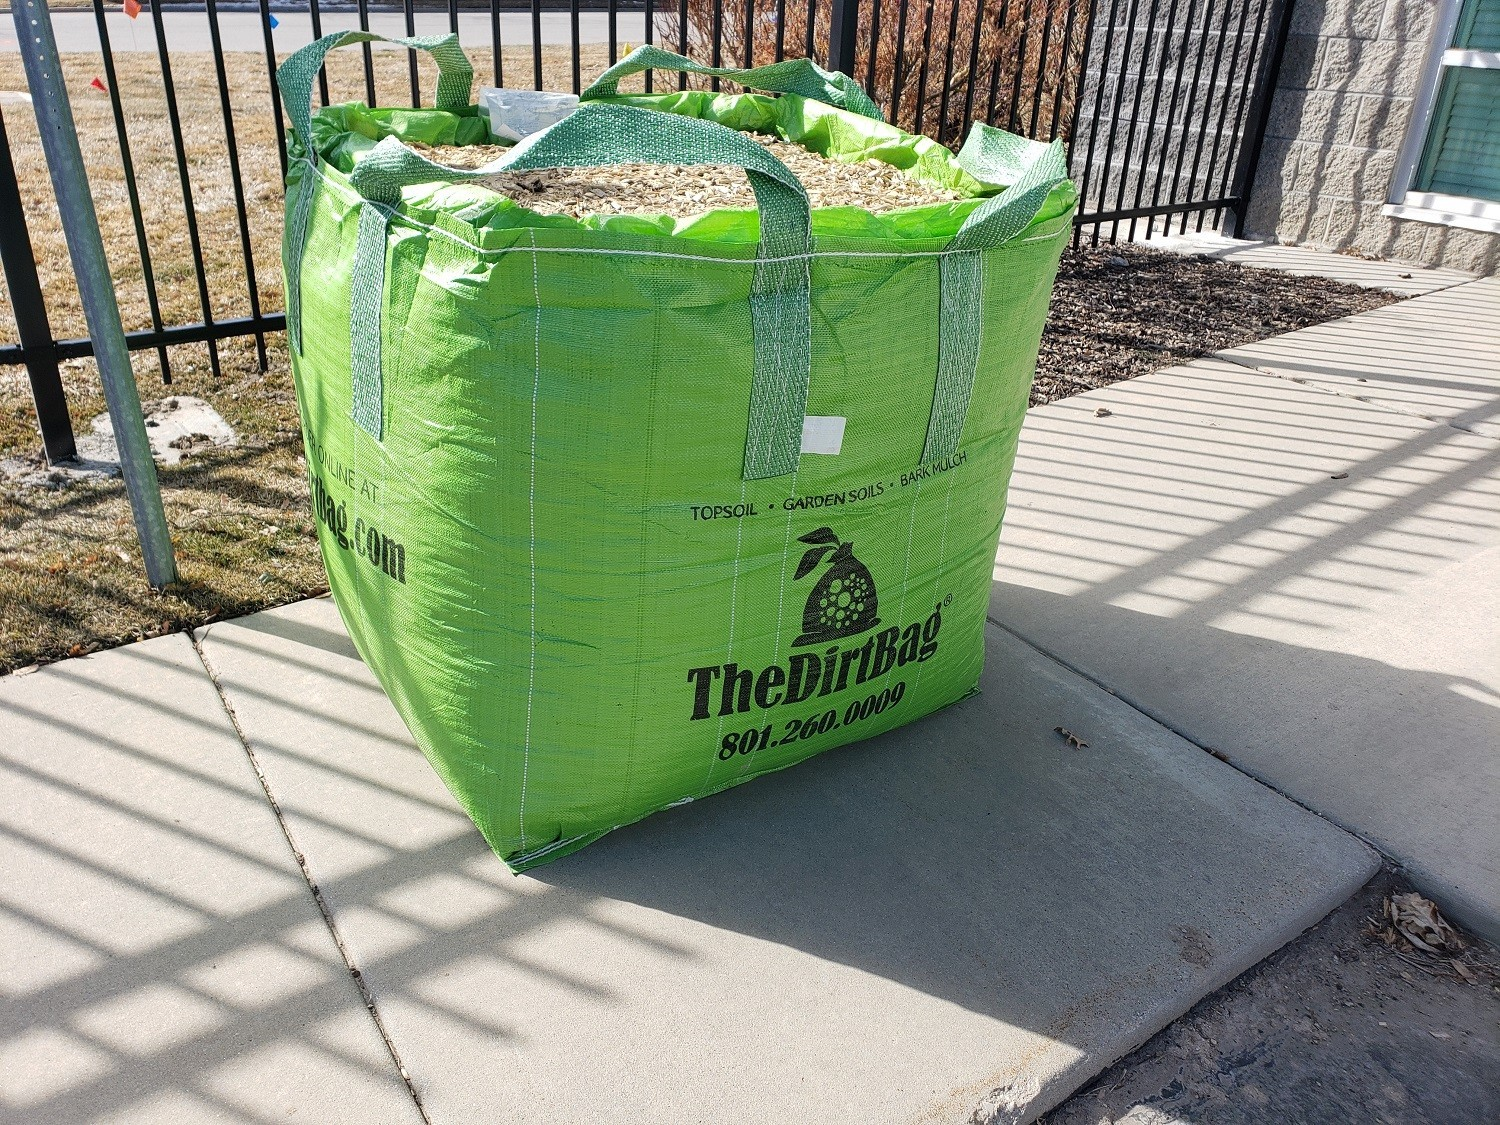 The Dirt Bag bagged landscaping products